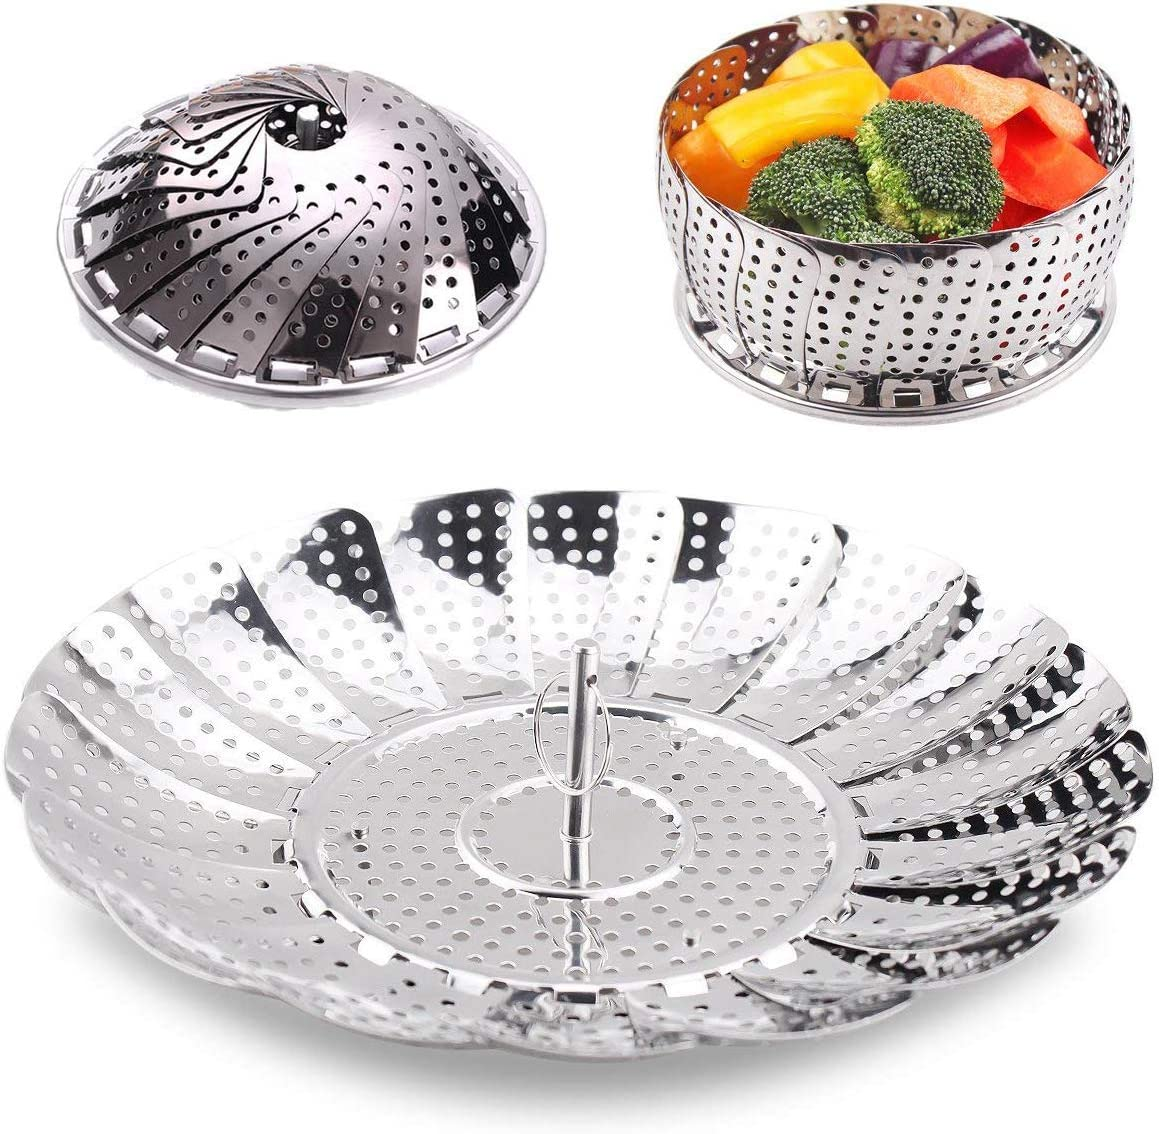 Food Steamer Basket for Cooking, Stainless Steel Vegetable Steamer Basket Retractable Kitchen Fruit Basket, Plug-in pan for Pans and Pressure Cookers (Small)